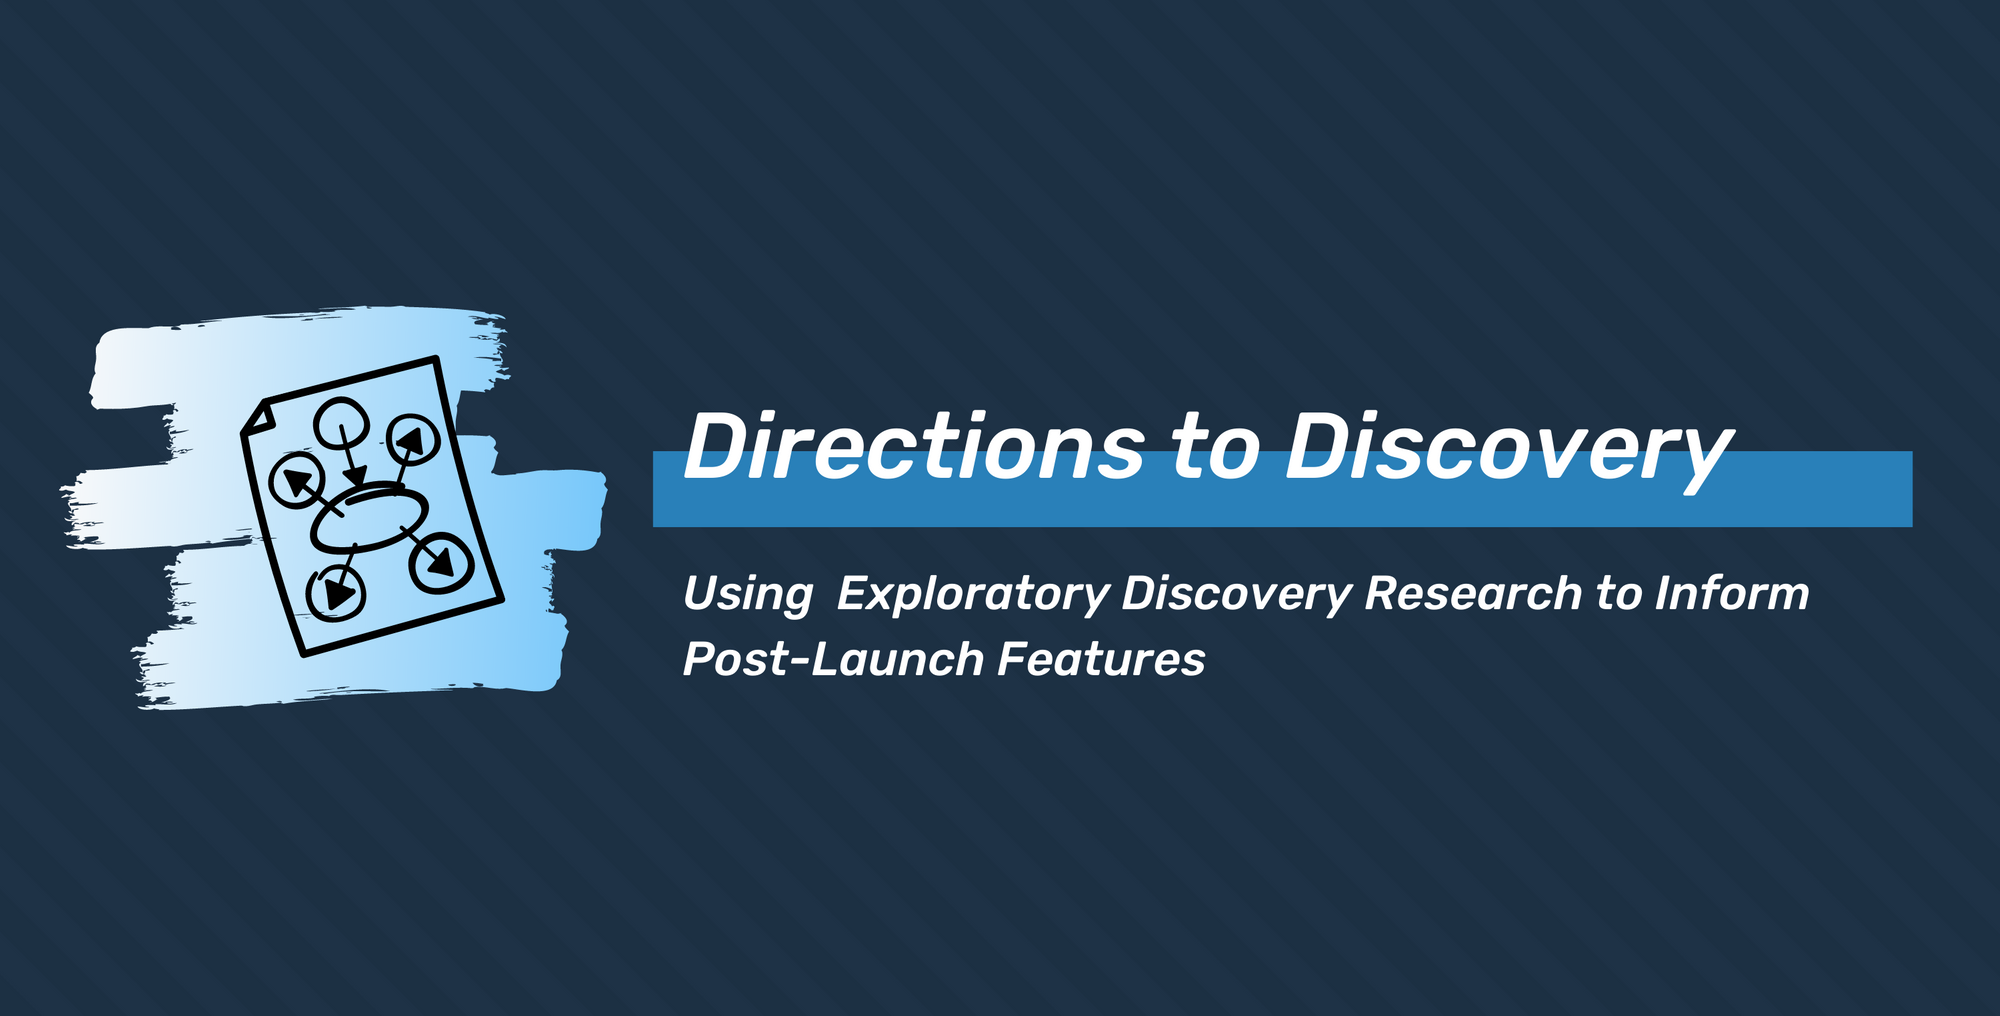 Directions to Discovery